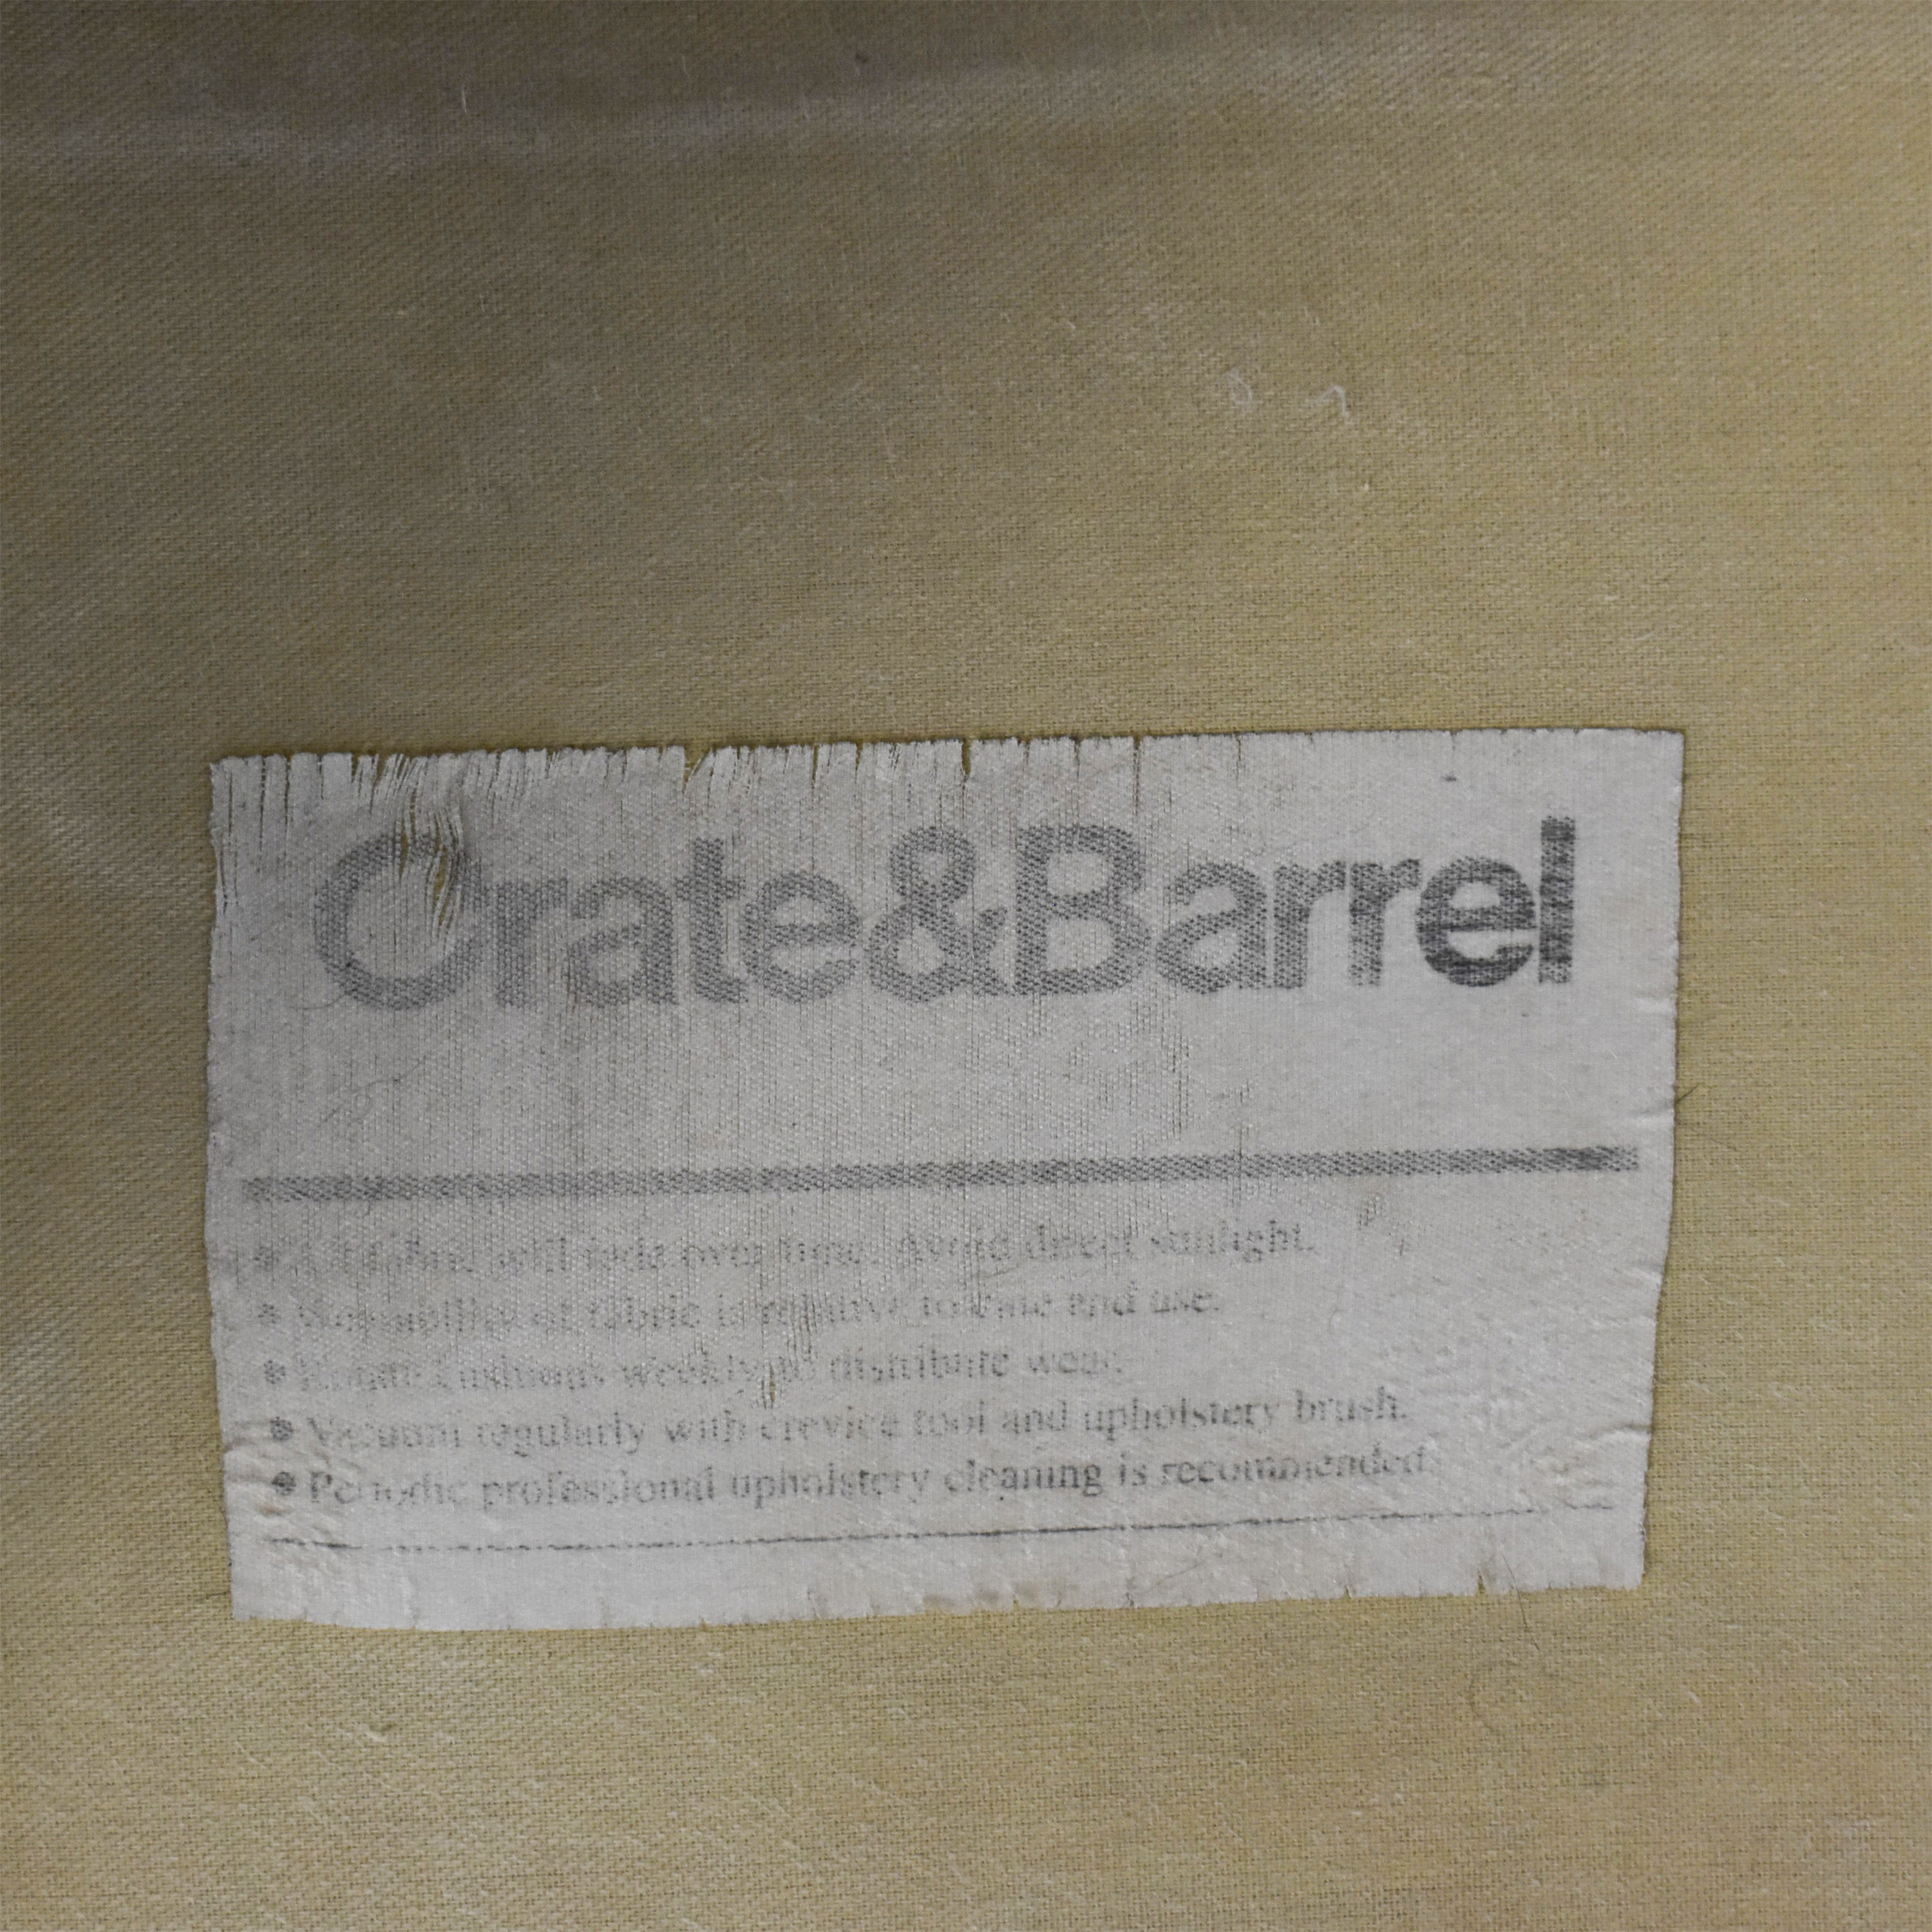 Crate & Barrel Crate & Barrel Accent Chair used